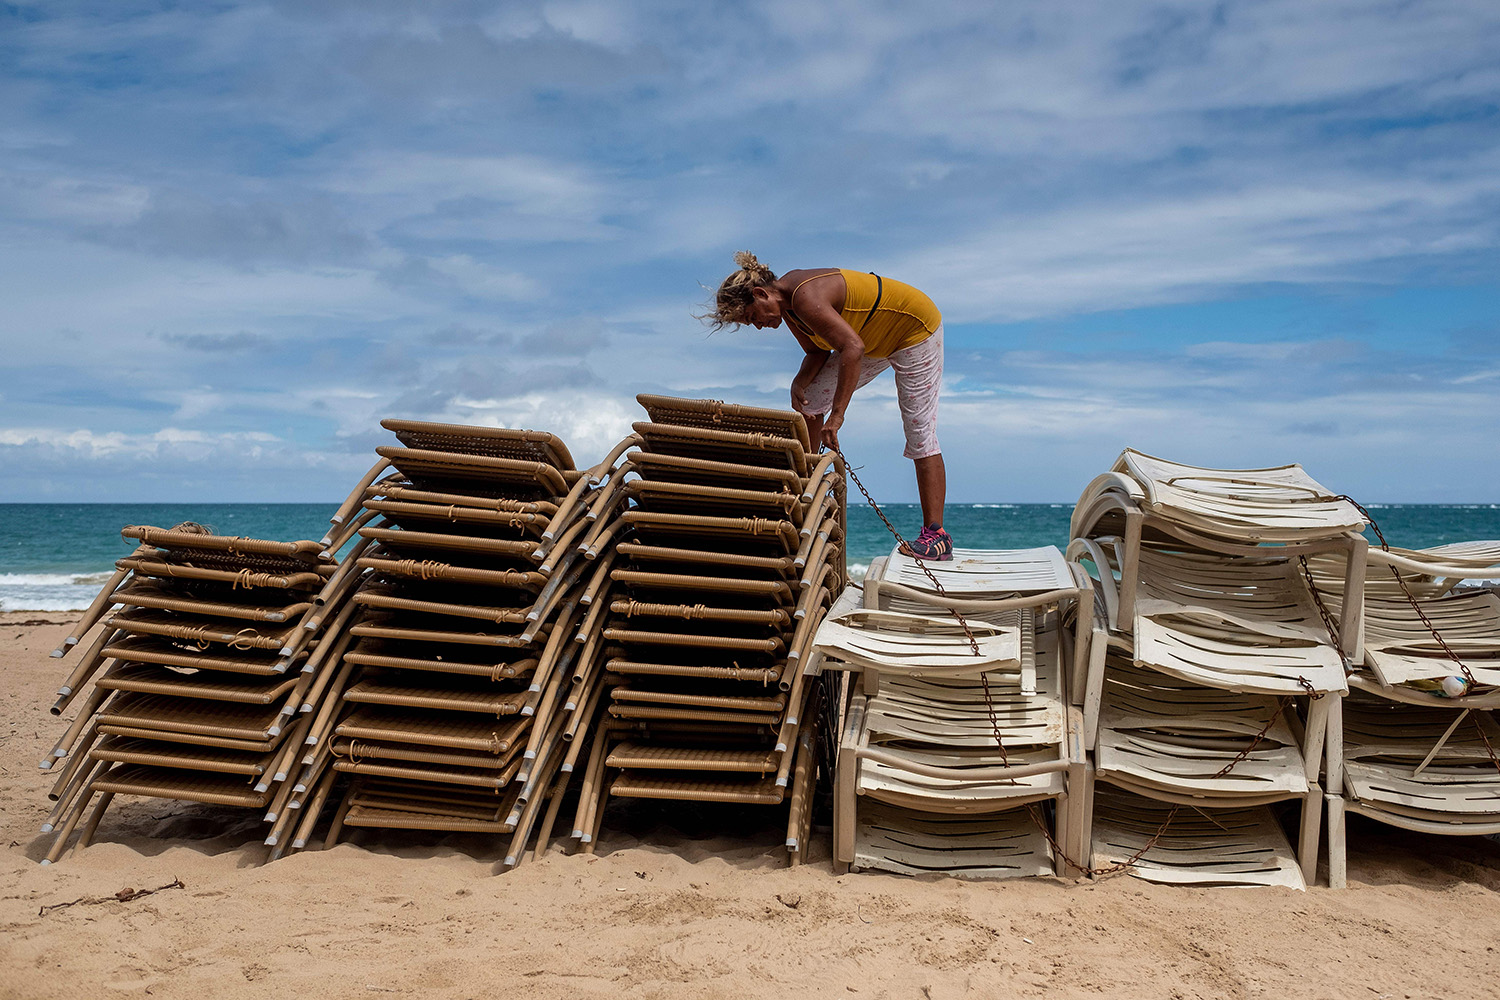 Zaida Elena chains up beach chairs from her rental business in San Juan, Puerto Rico, on March 18. RICARDO ARDUENGO/AFP via Getty Images